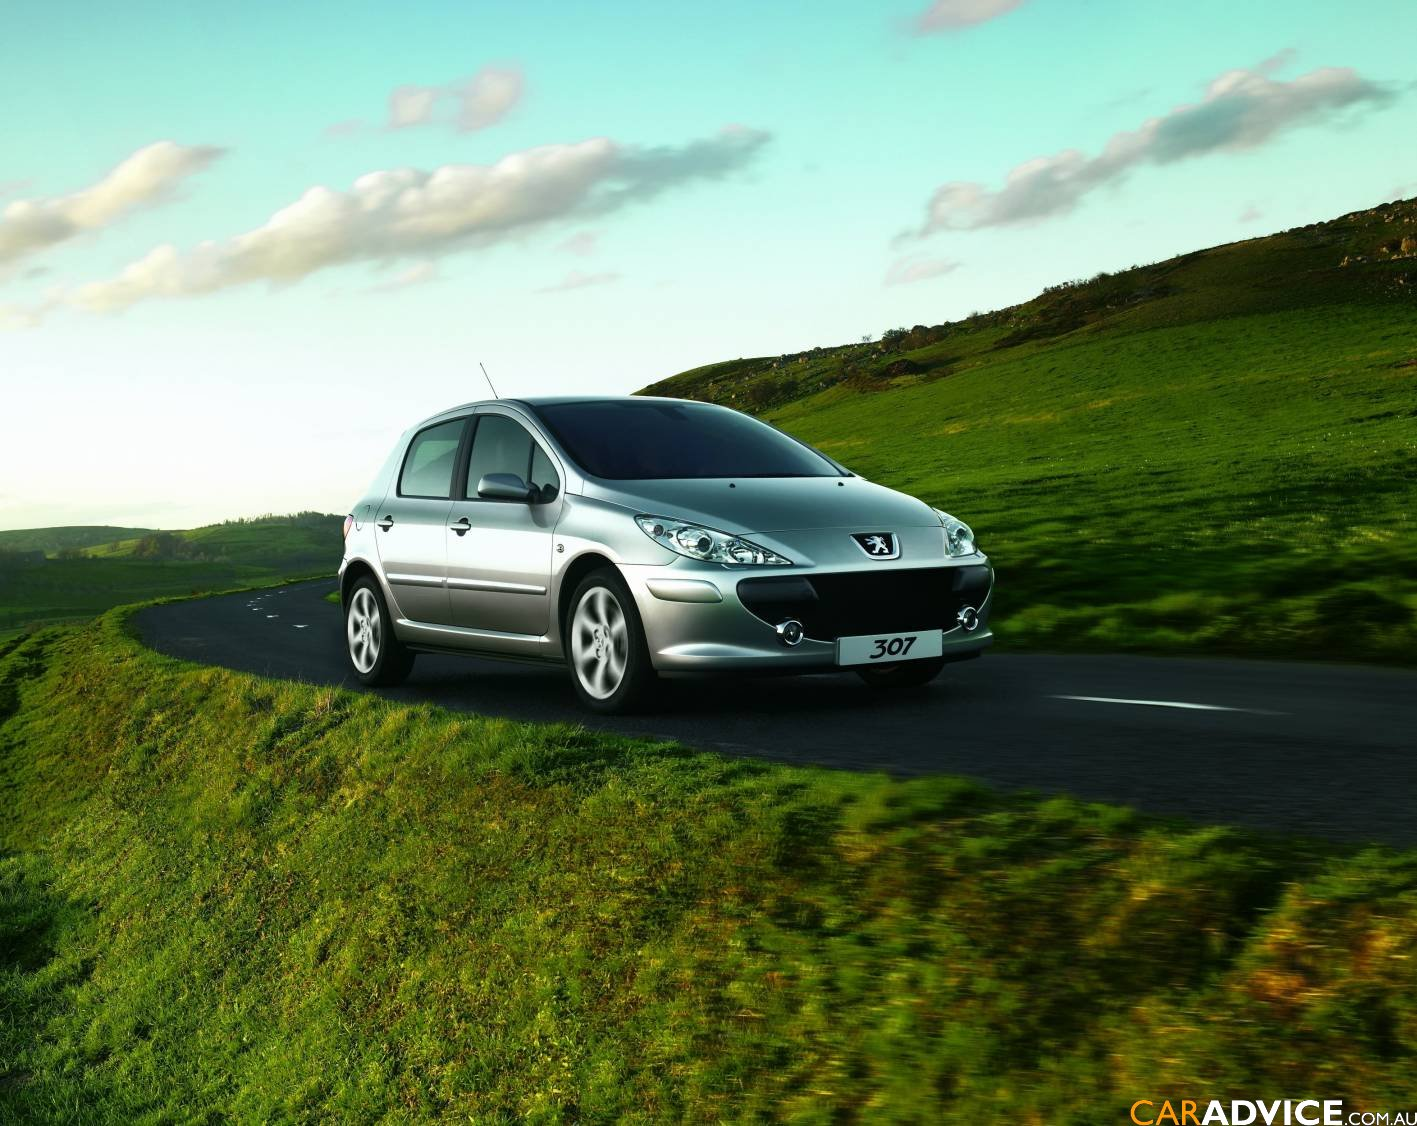 2007 Peugeot 307 review   CarAdvice